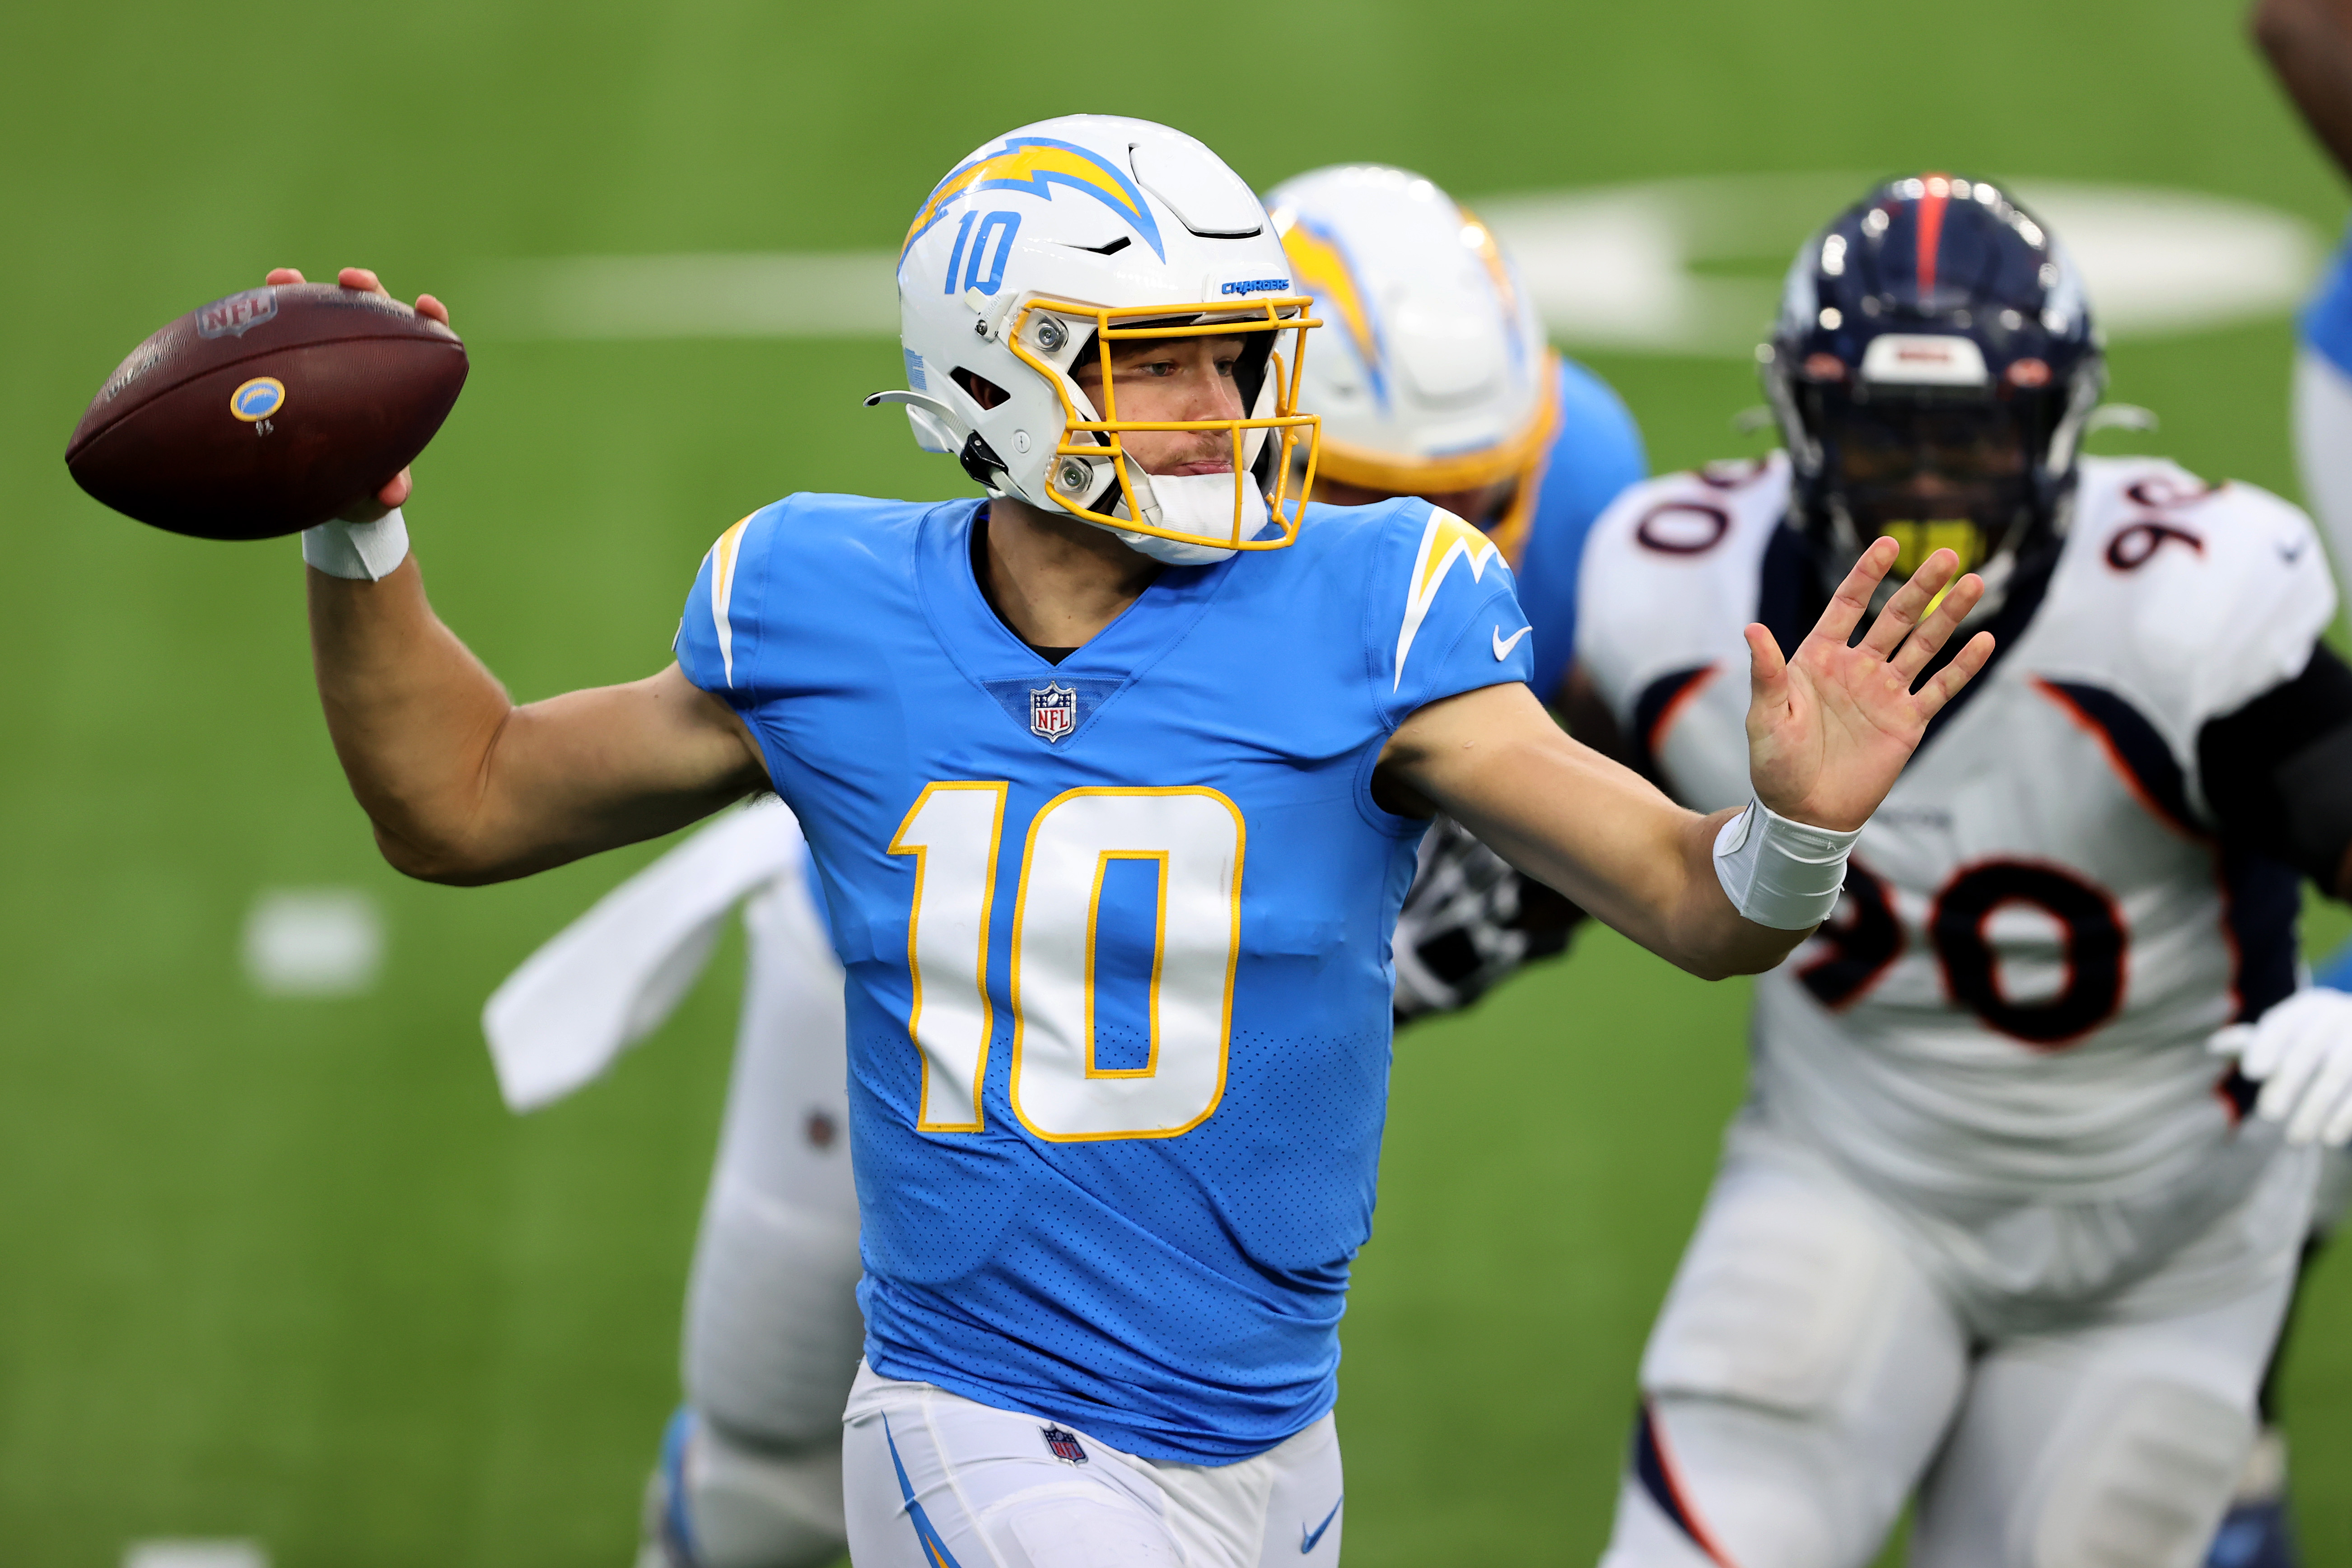 Justin Herbert #10 of the Los Angeles Chargers passes the ball during the first half of a game against the Denver Broncos at SoFi Stadium on December 27, 2020 in Inglewood, California.